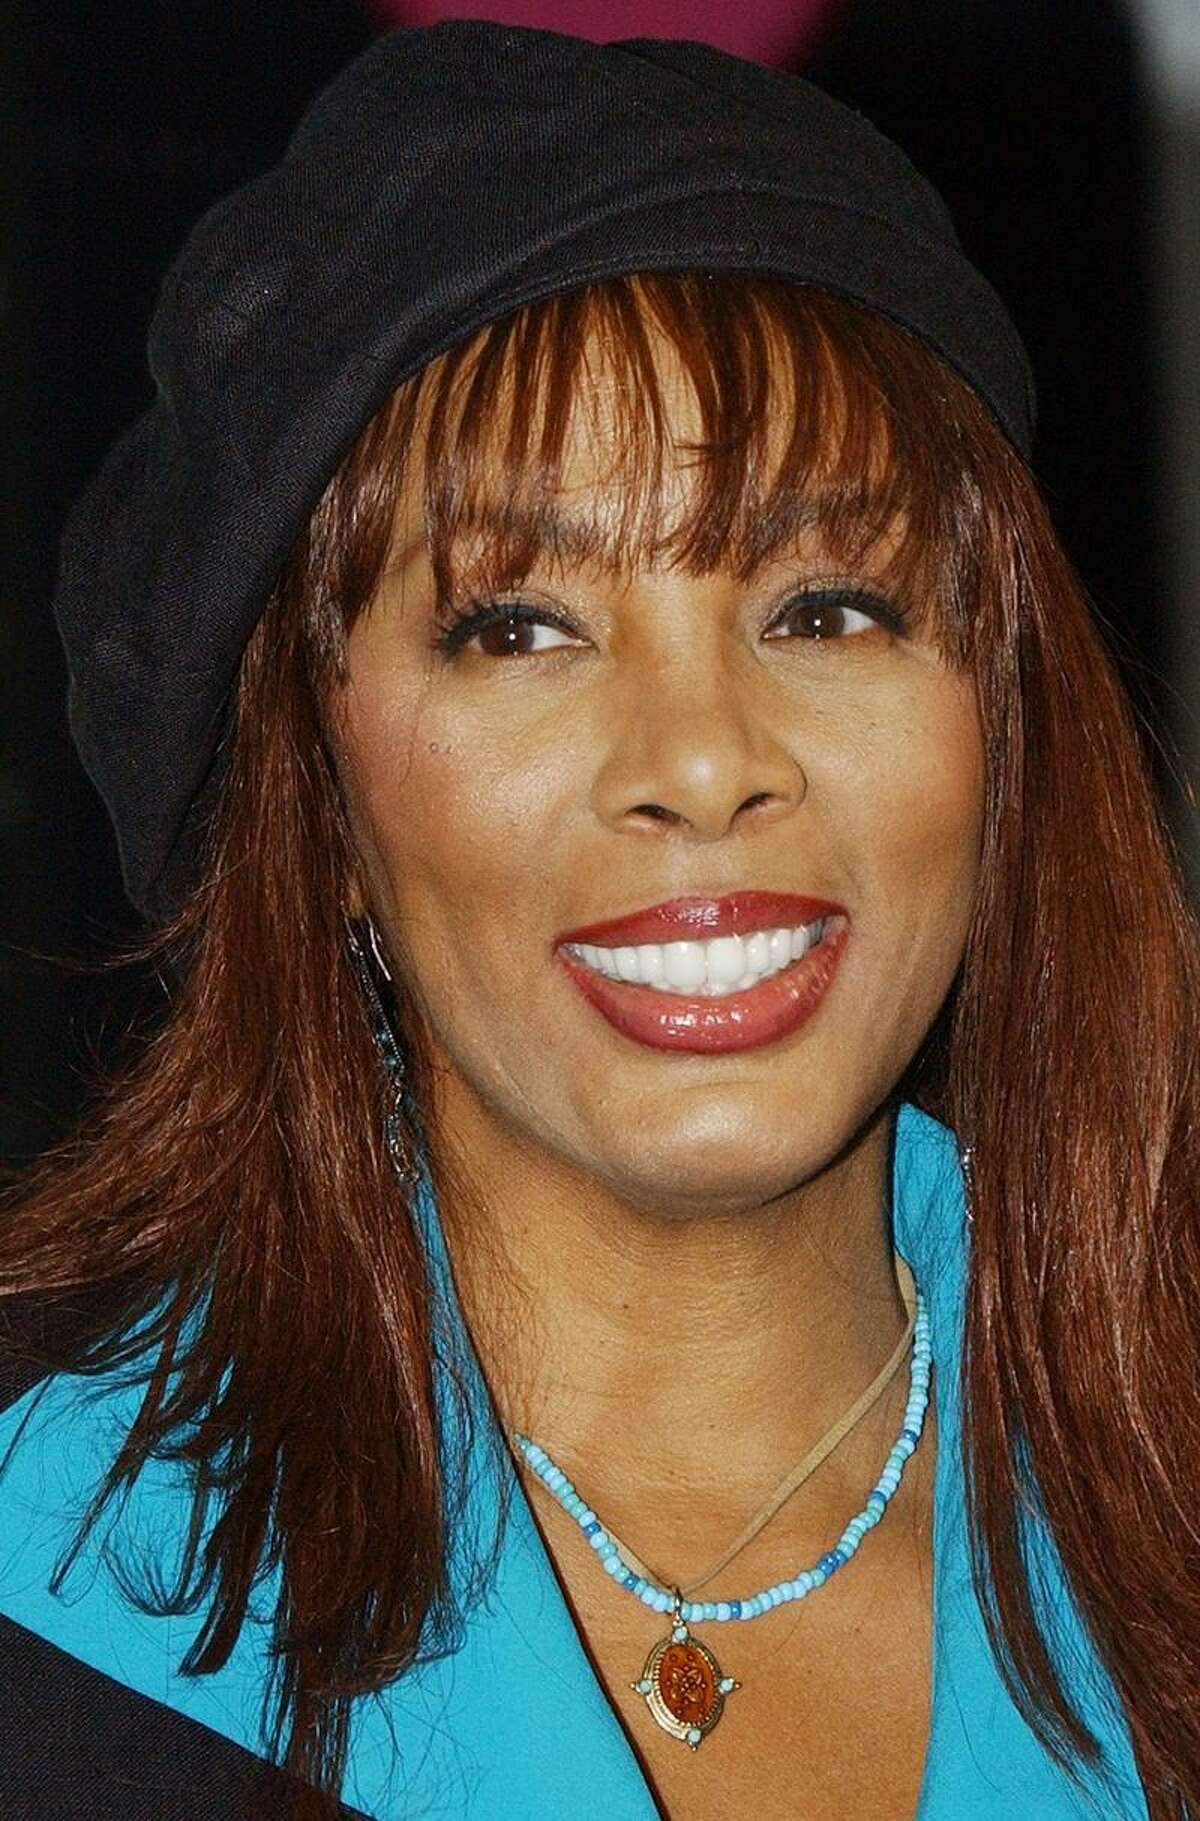 In this June 2004 file photo, Donna Summer is shown at an appearance in London. Associated Press